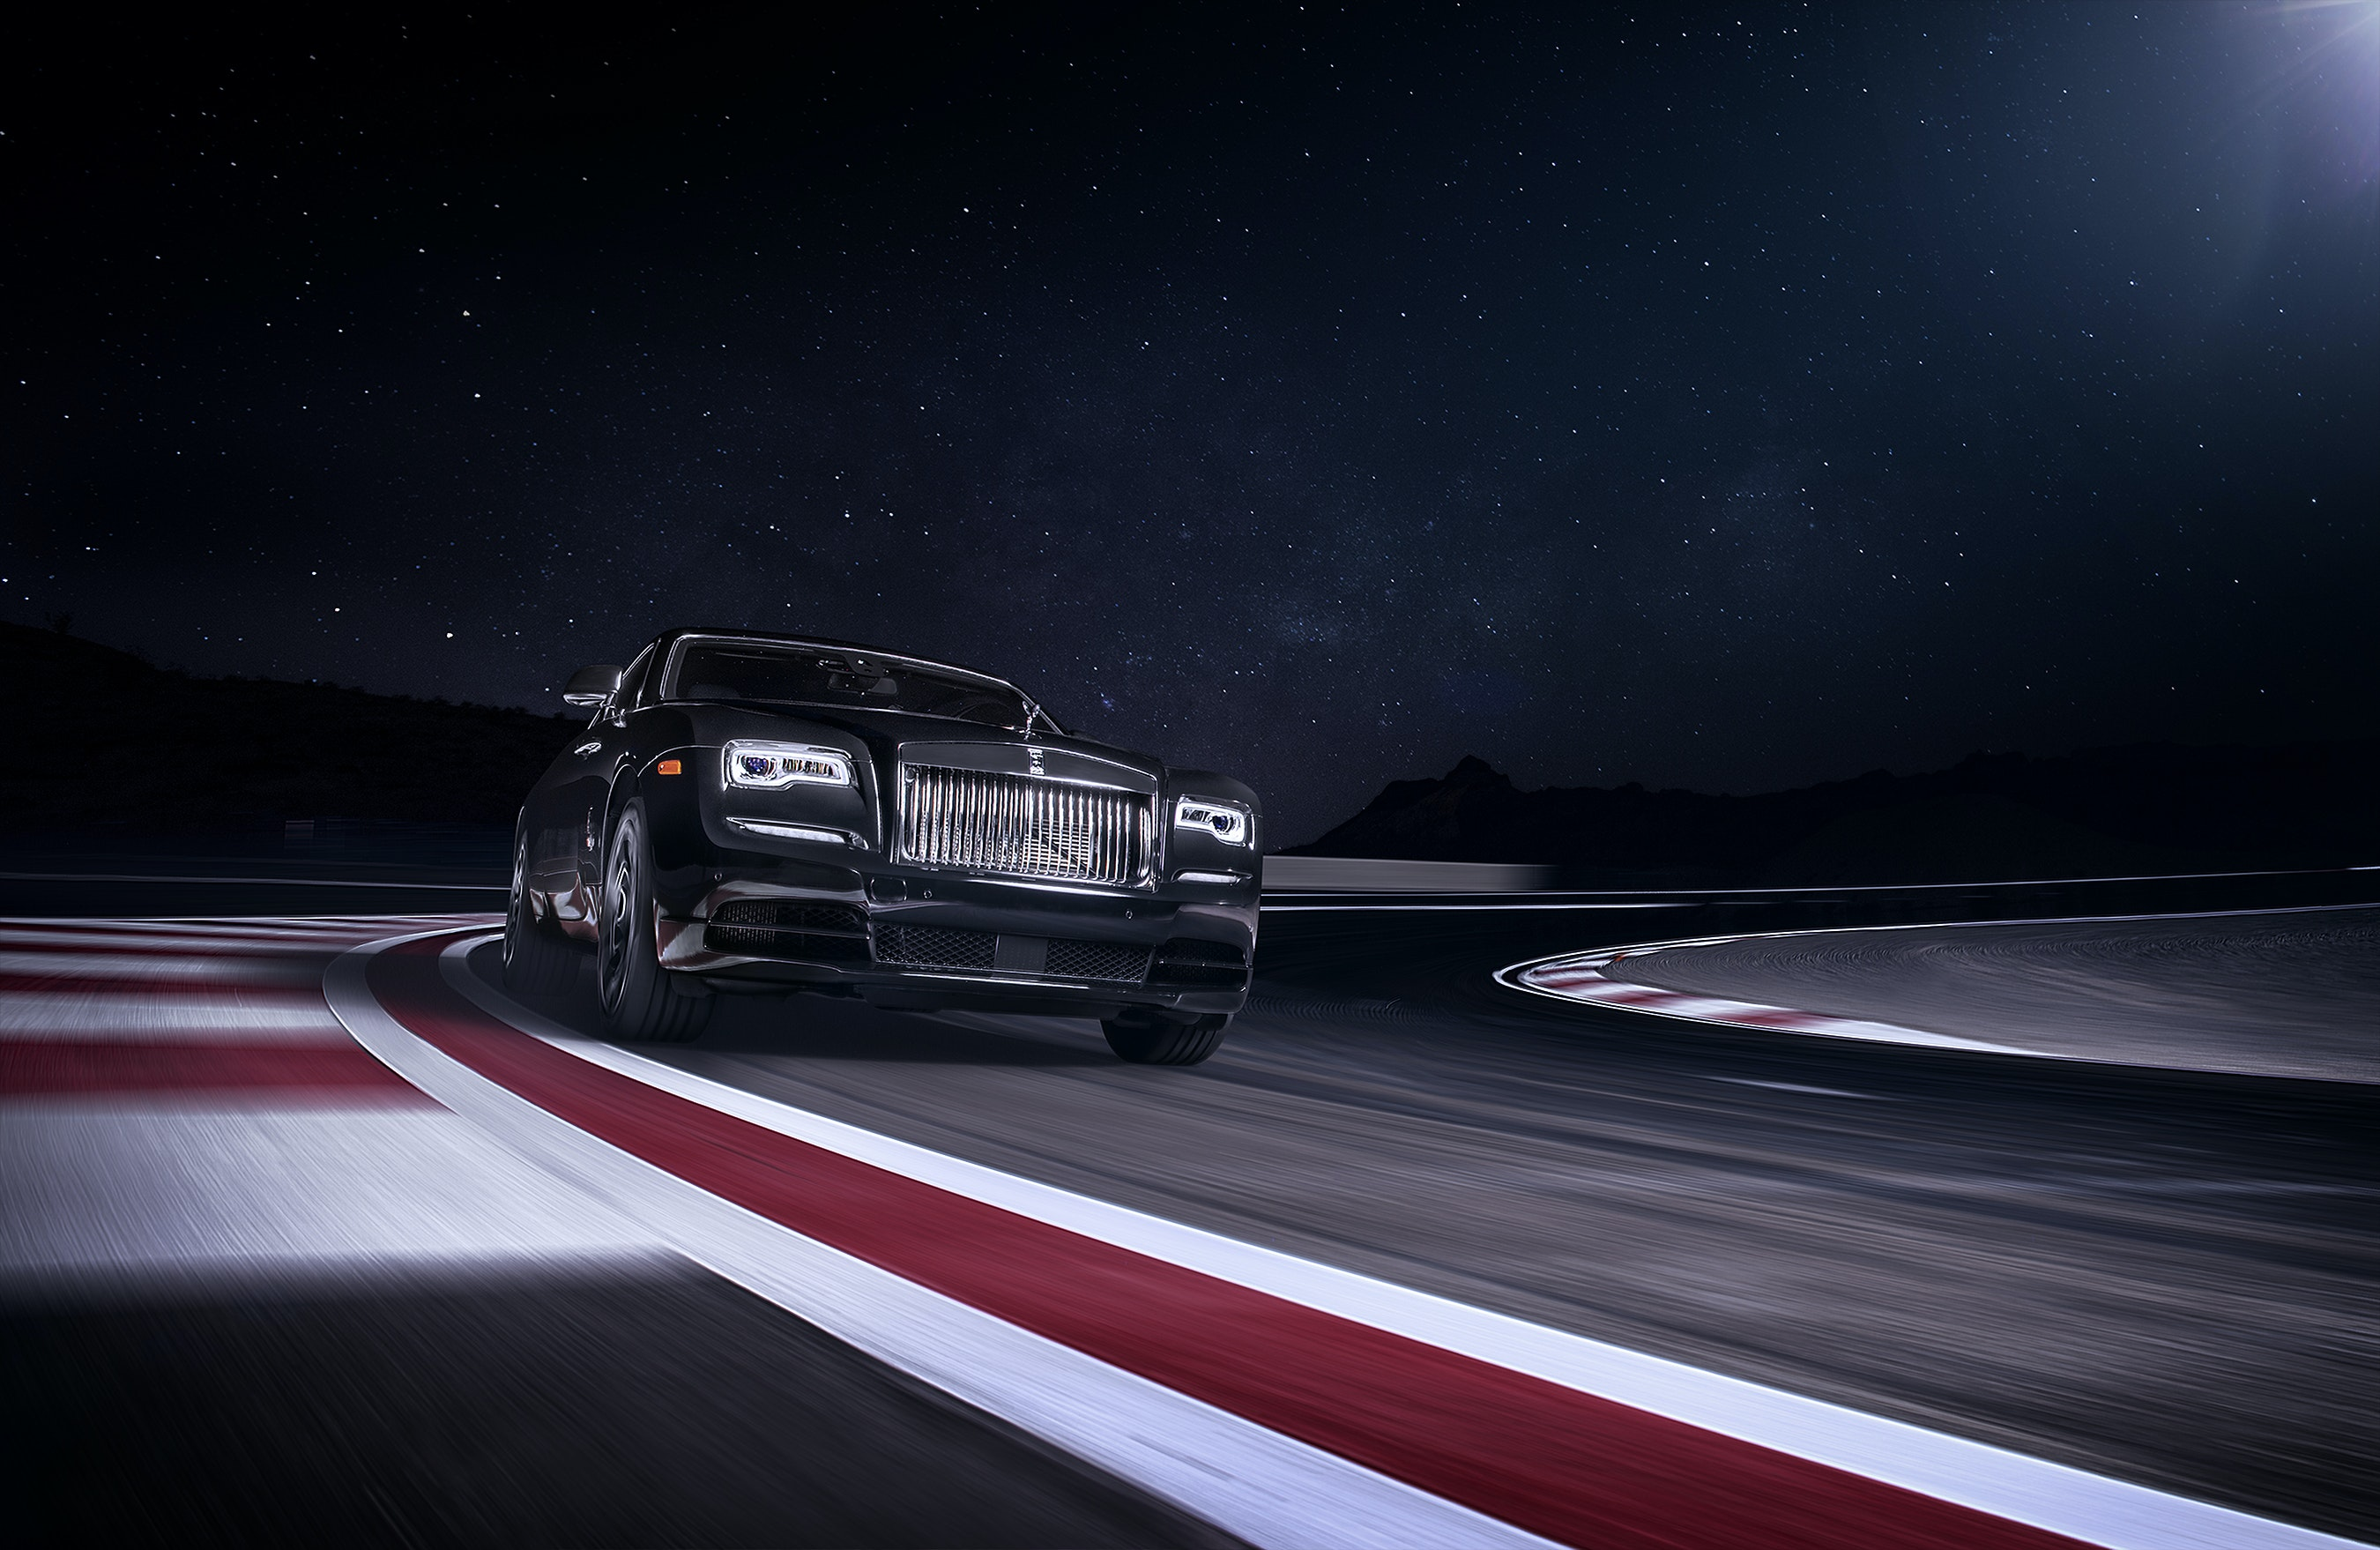 SHIRAKIPHOTO & DESIGN LLC - 0003_Rolls Royce Black Badge Track Instagram Web